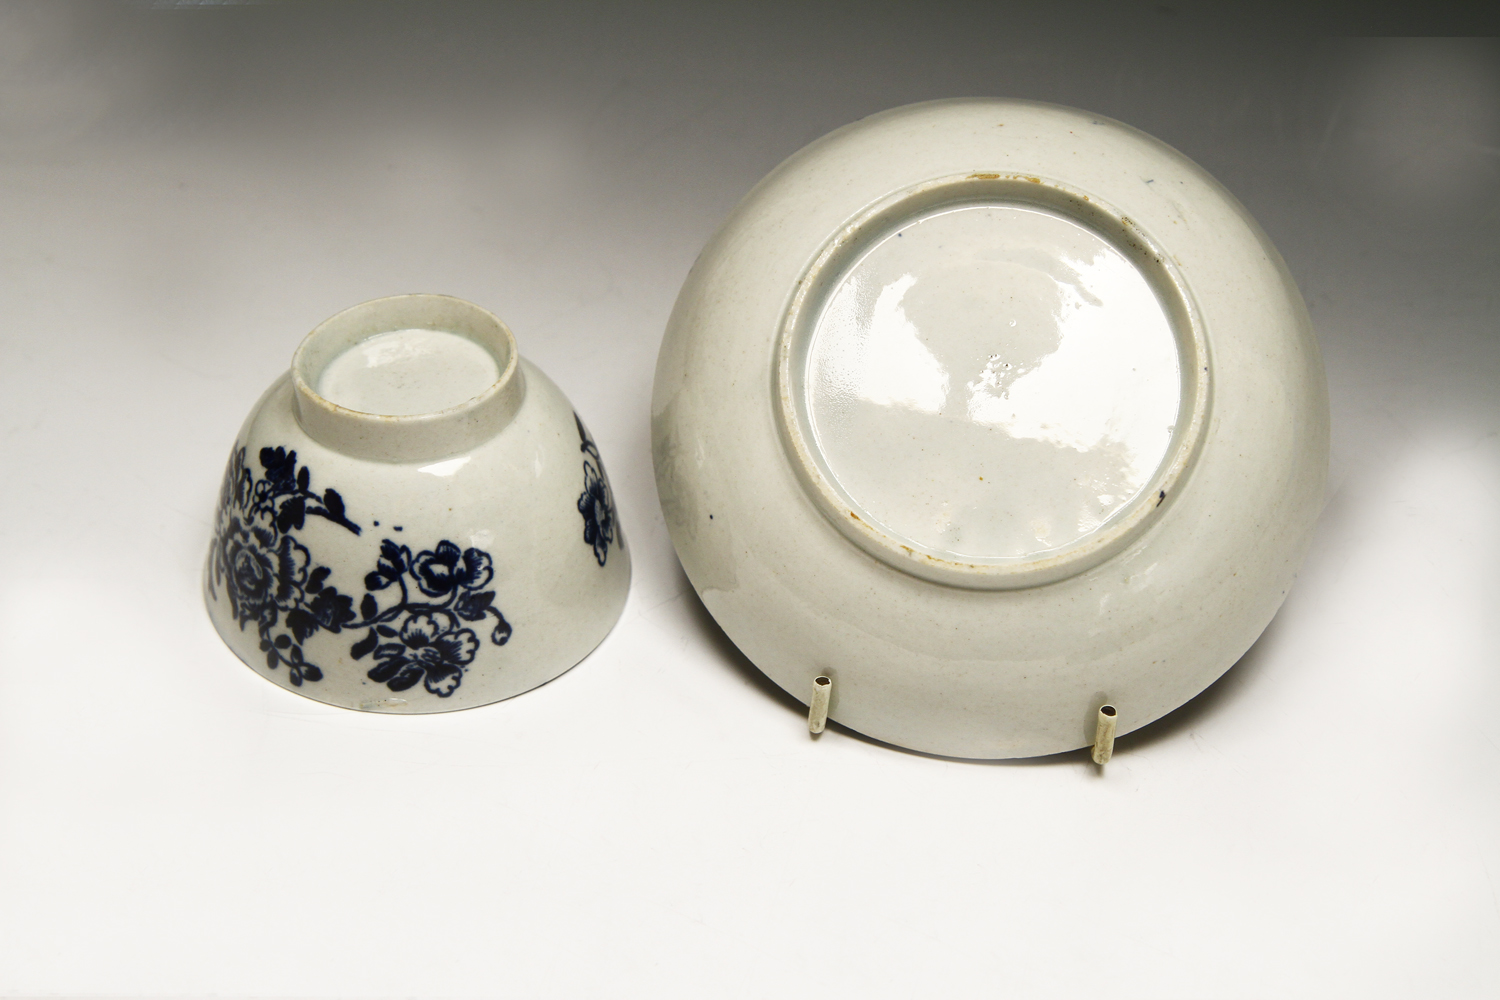 1069 - A Liverpool, probably Seth Pennington teabowl and saucer c 1785.